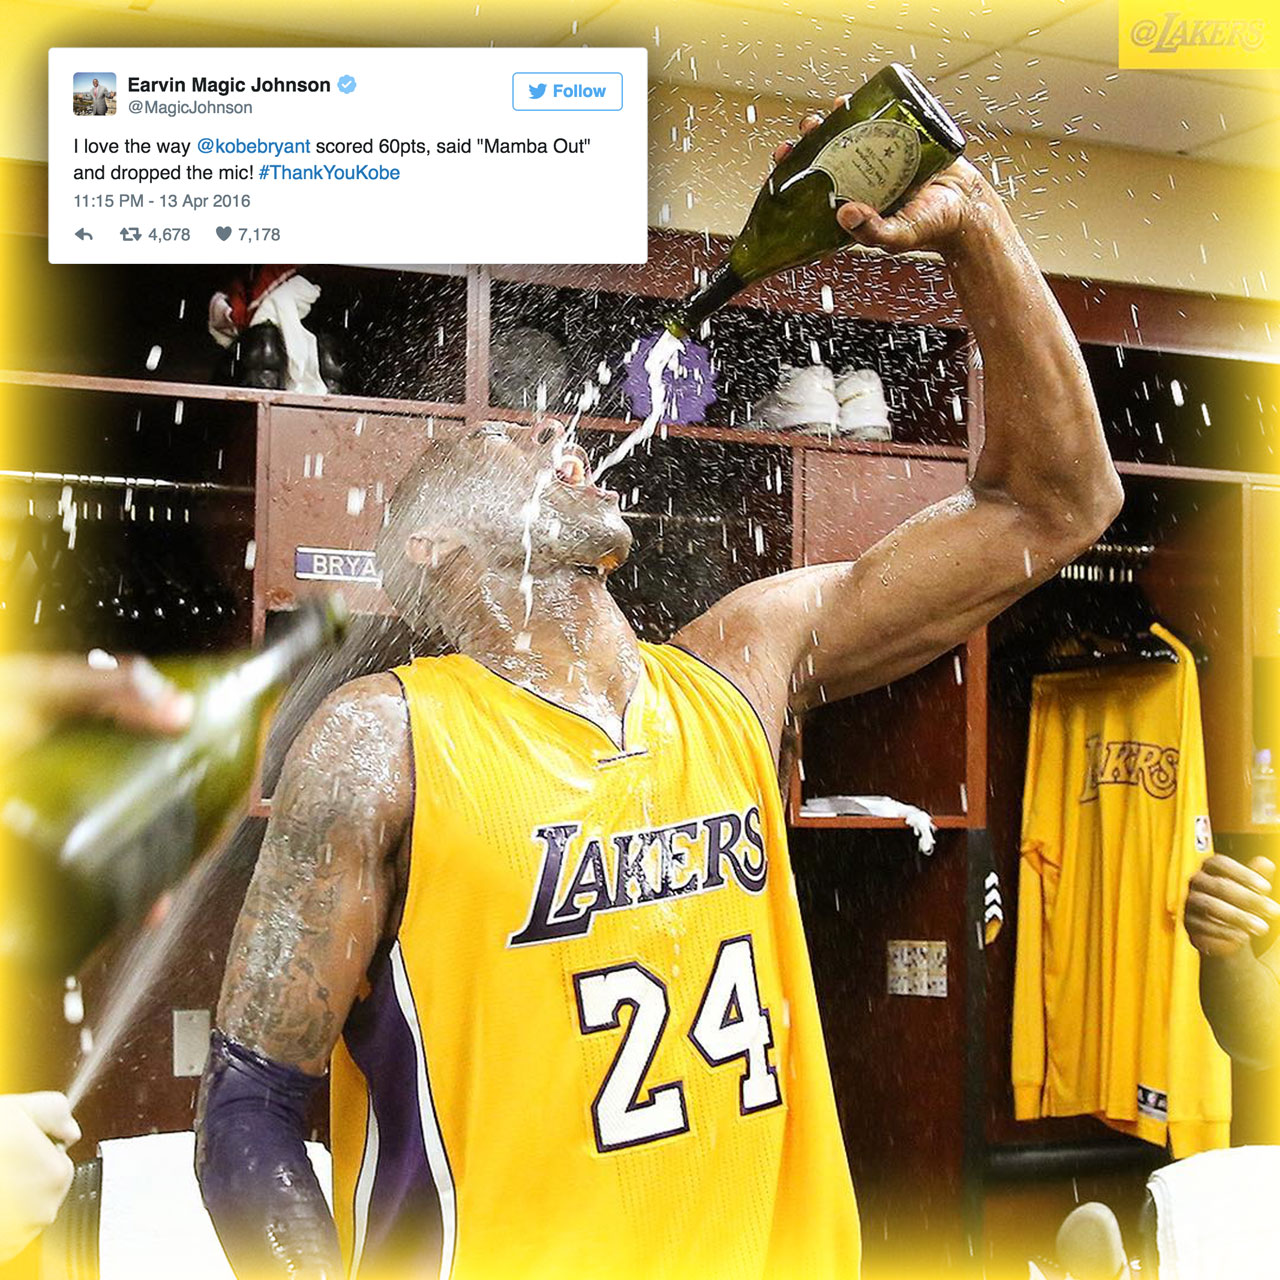 Kobe Bryant celebrates after scoring 60 points in his final NBA game